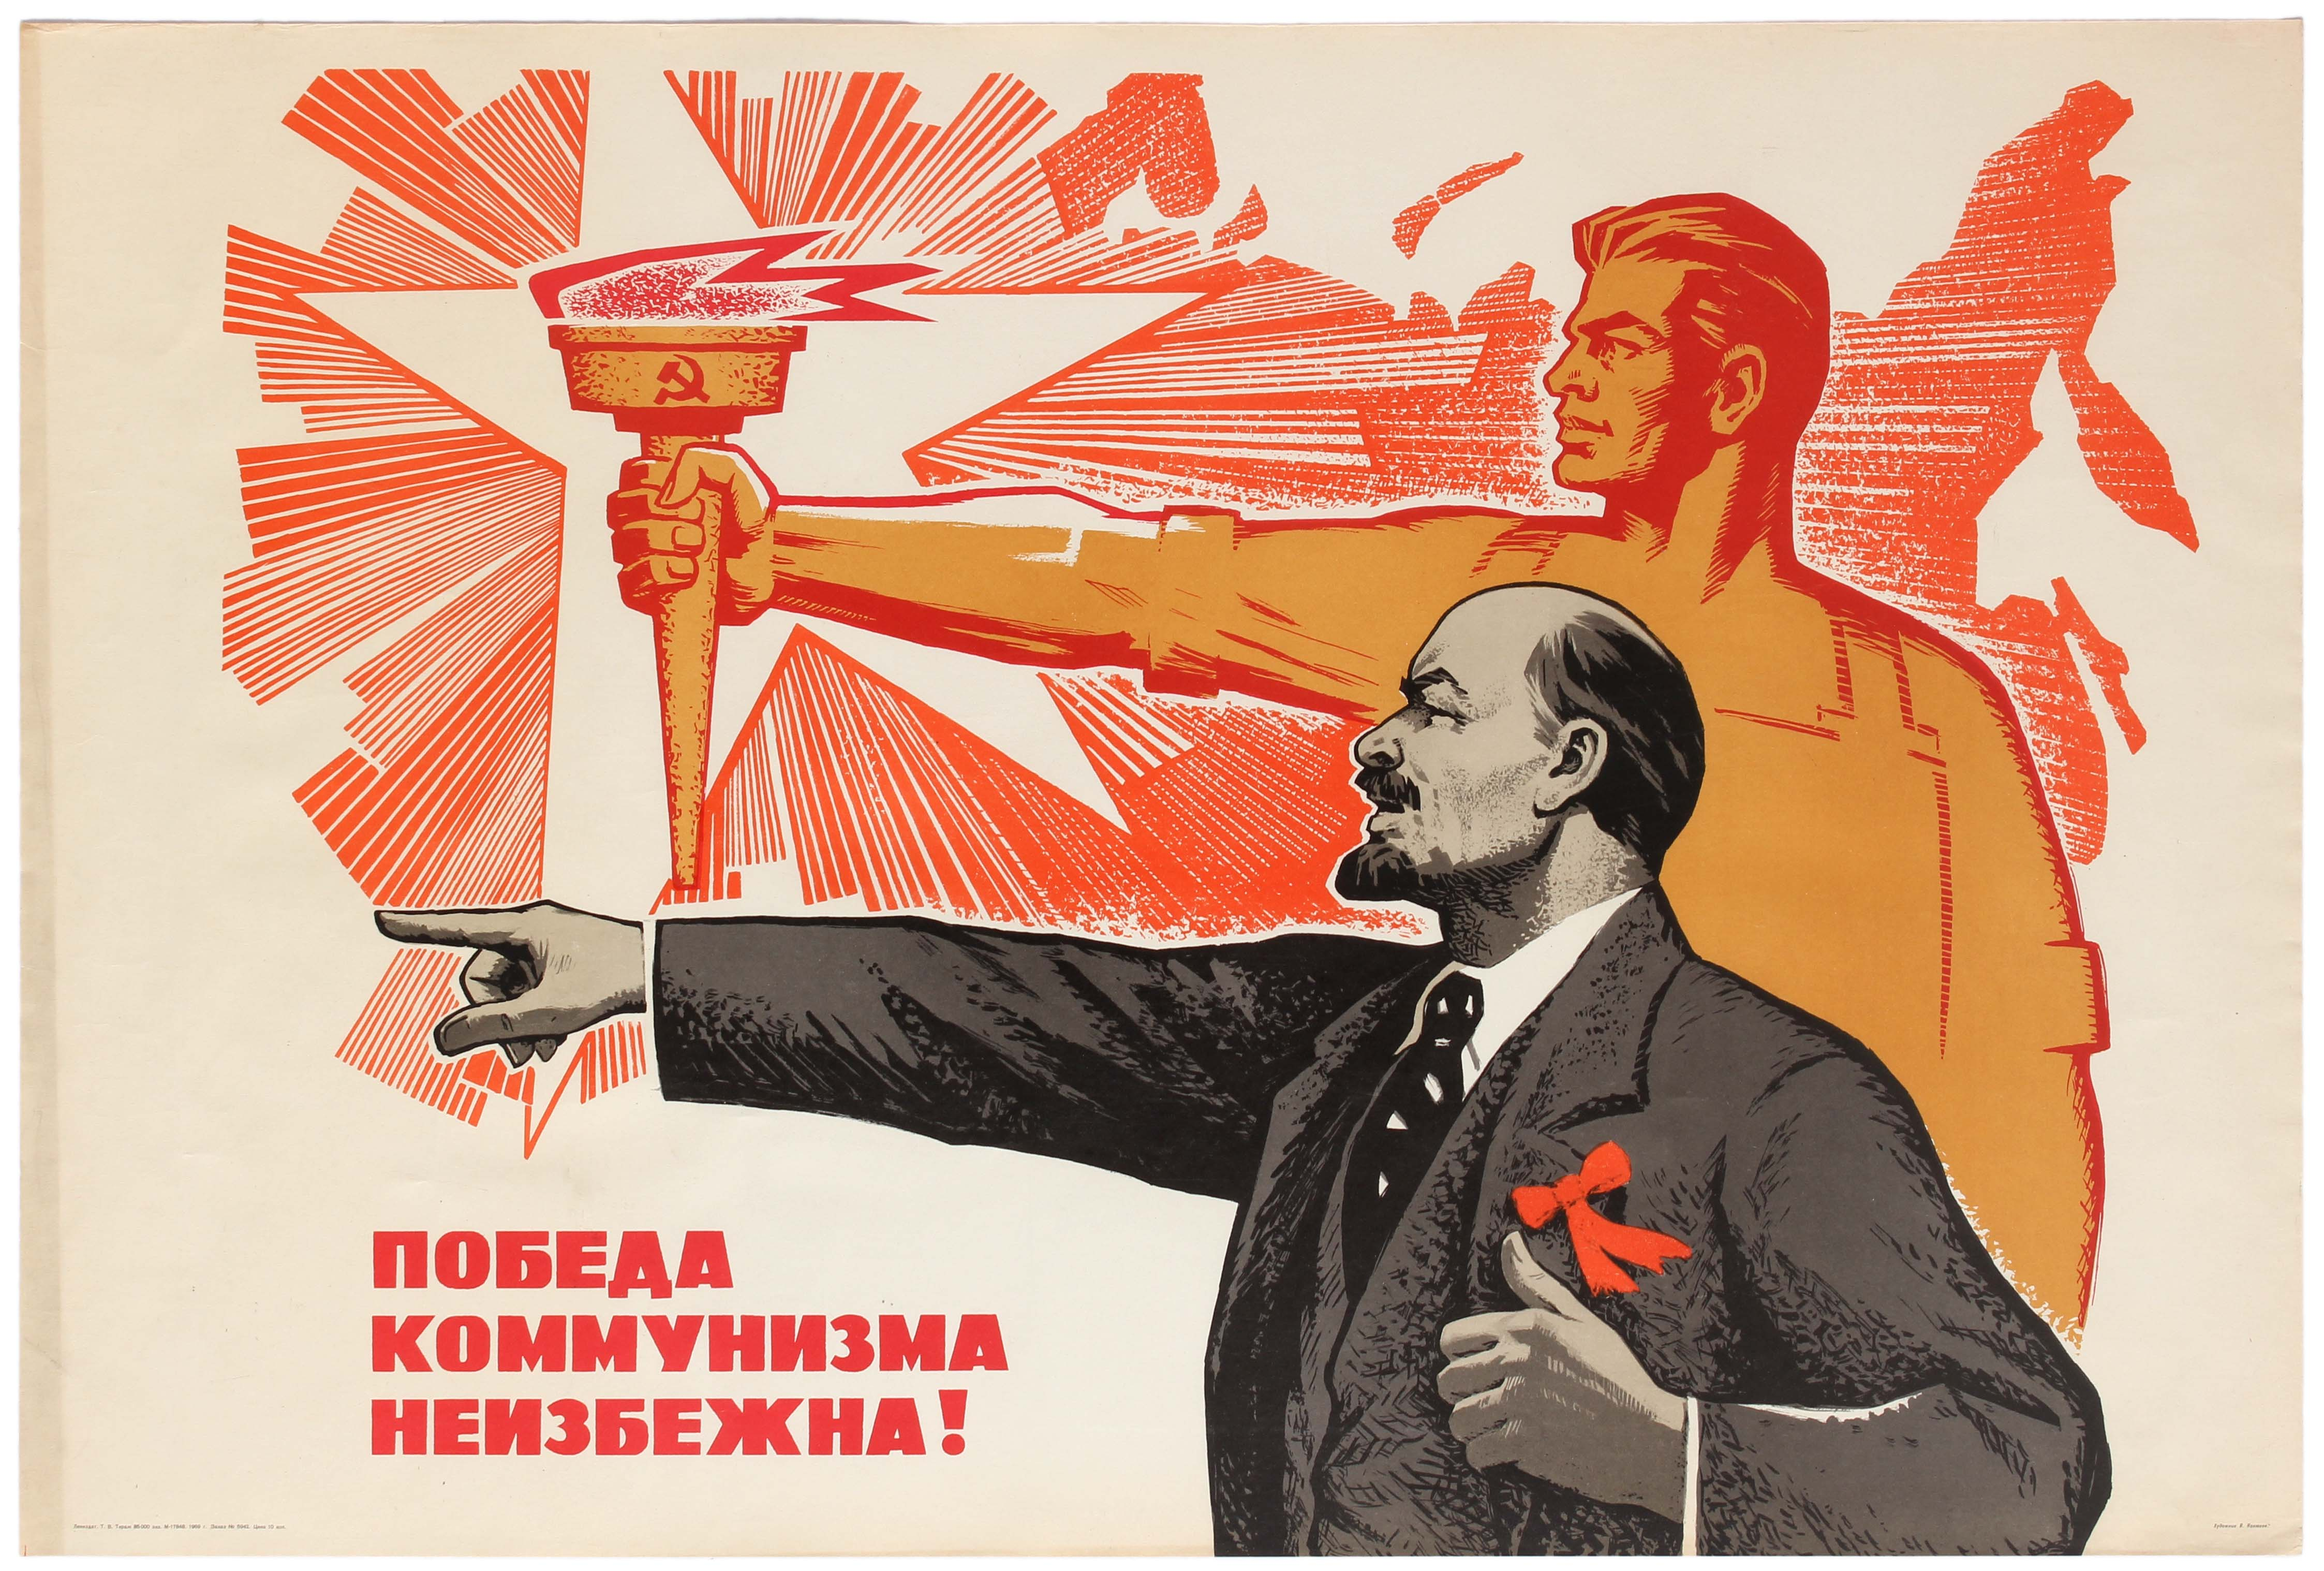 Lot 32 - Propaganda Poster The Victory of Communism is Inevitable Lenin Torch USSR